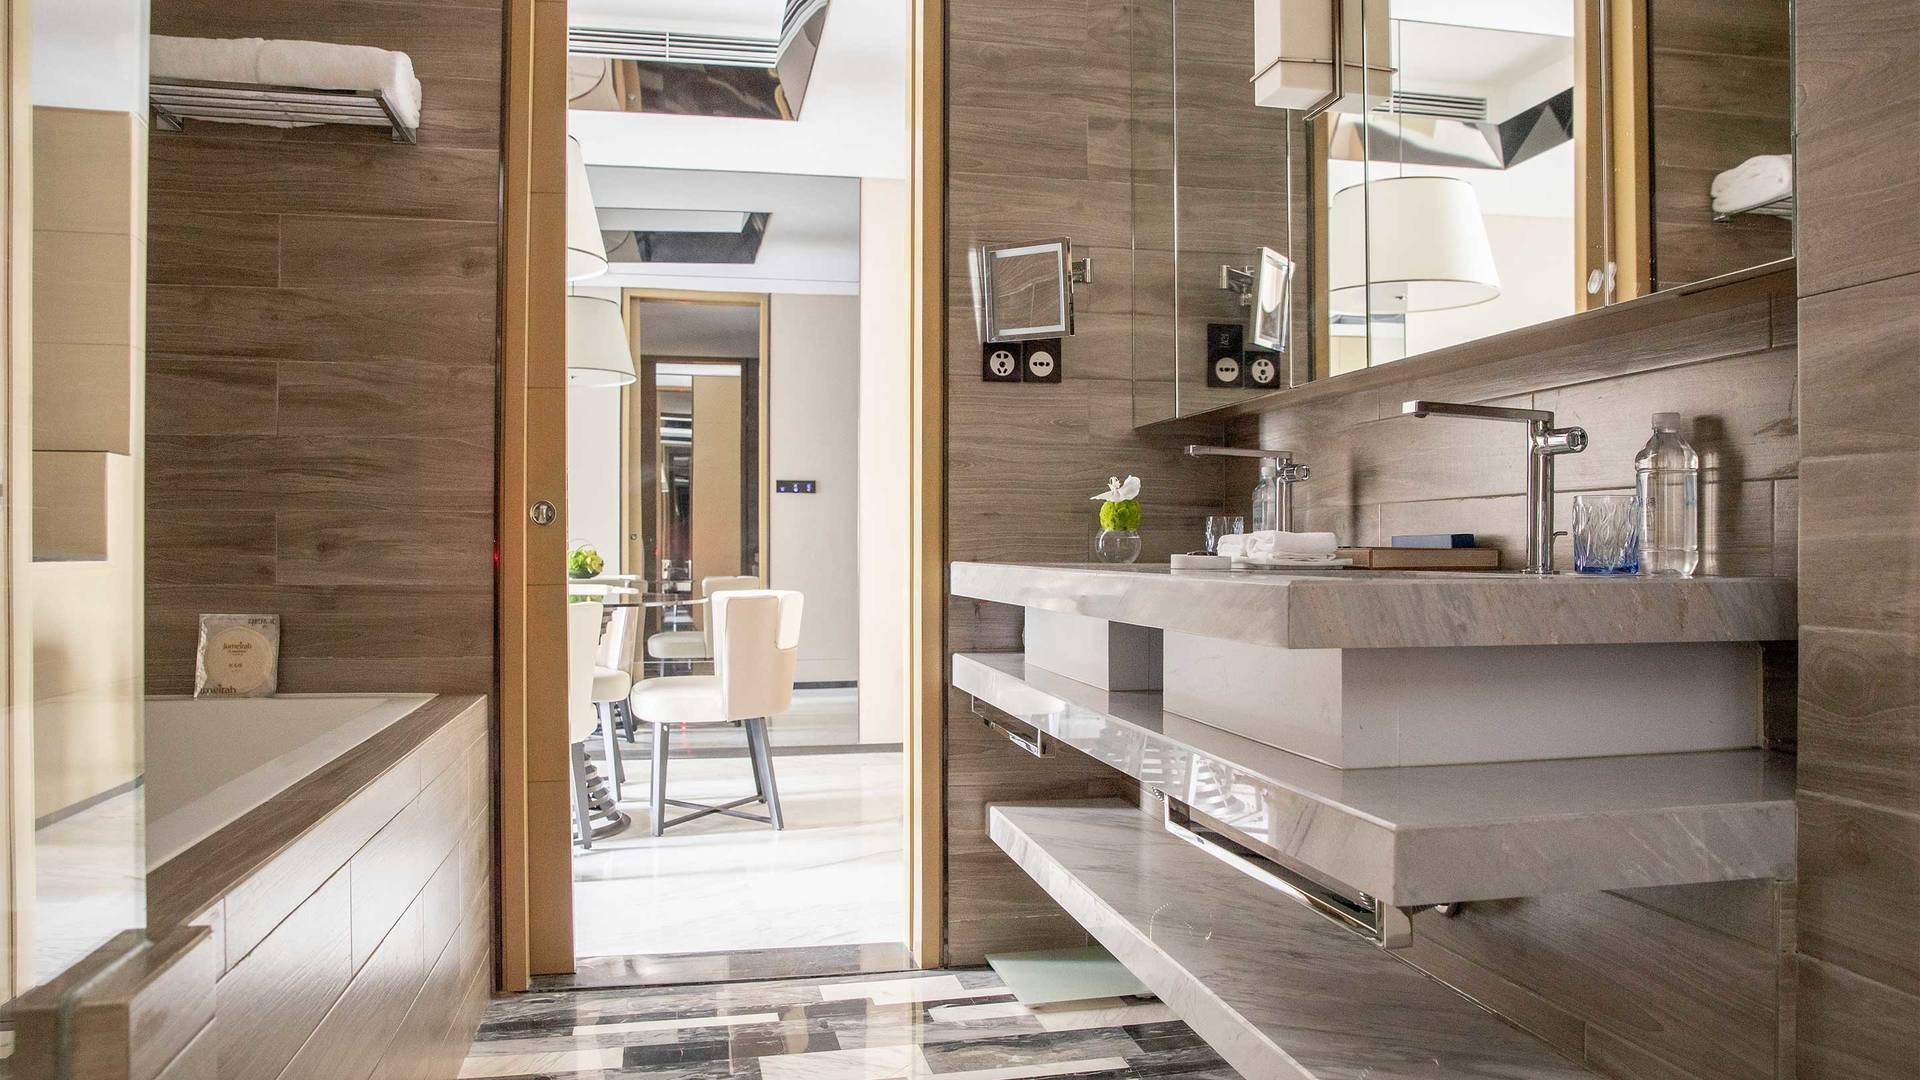 16-9 JUMEIRAH LIVING GUANGZHOU Contemporary 1 bed room suite bath room